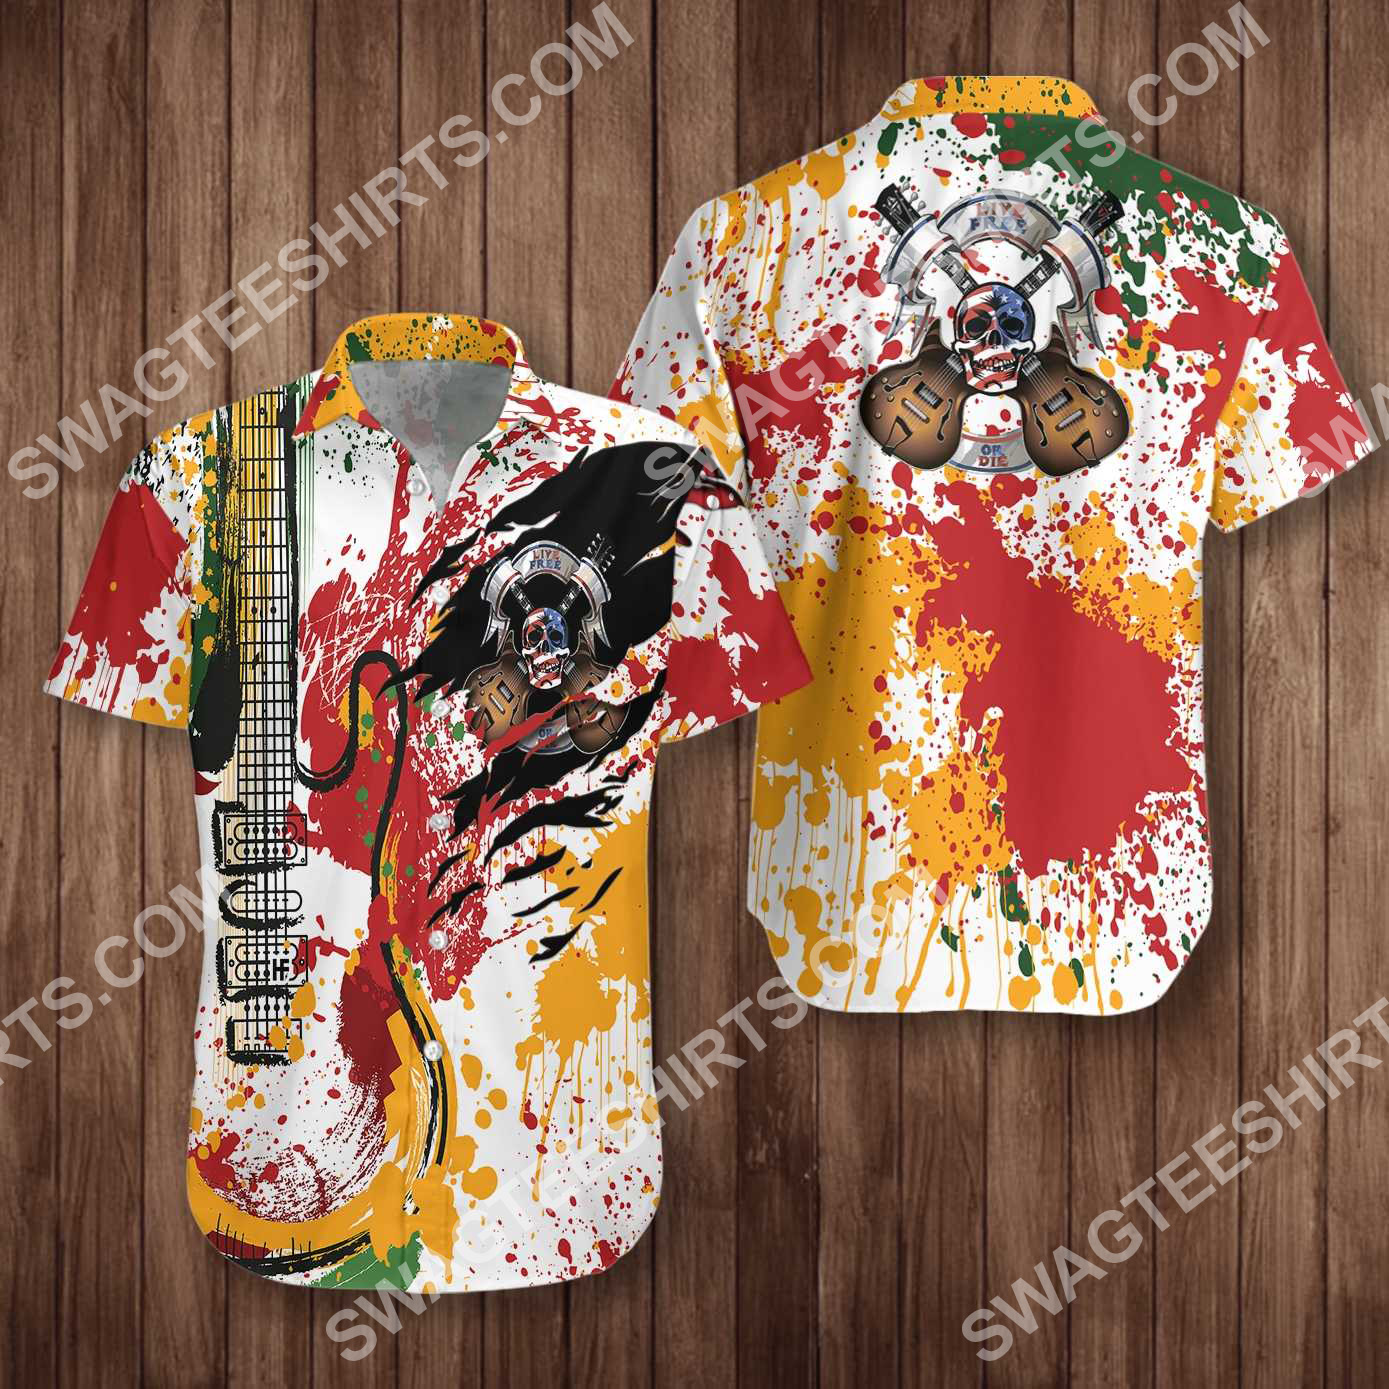 guitar live free or die all over printed hawaiian shirt 5(1)